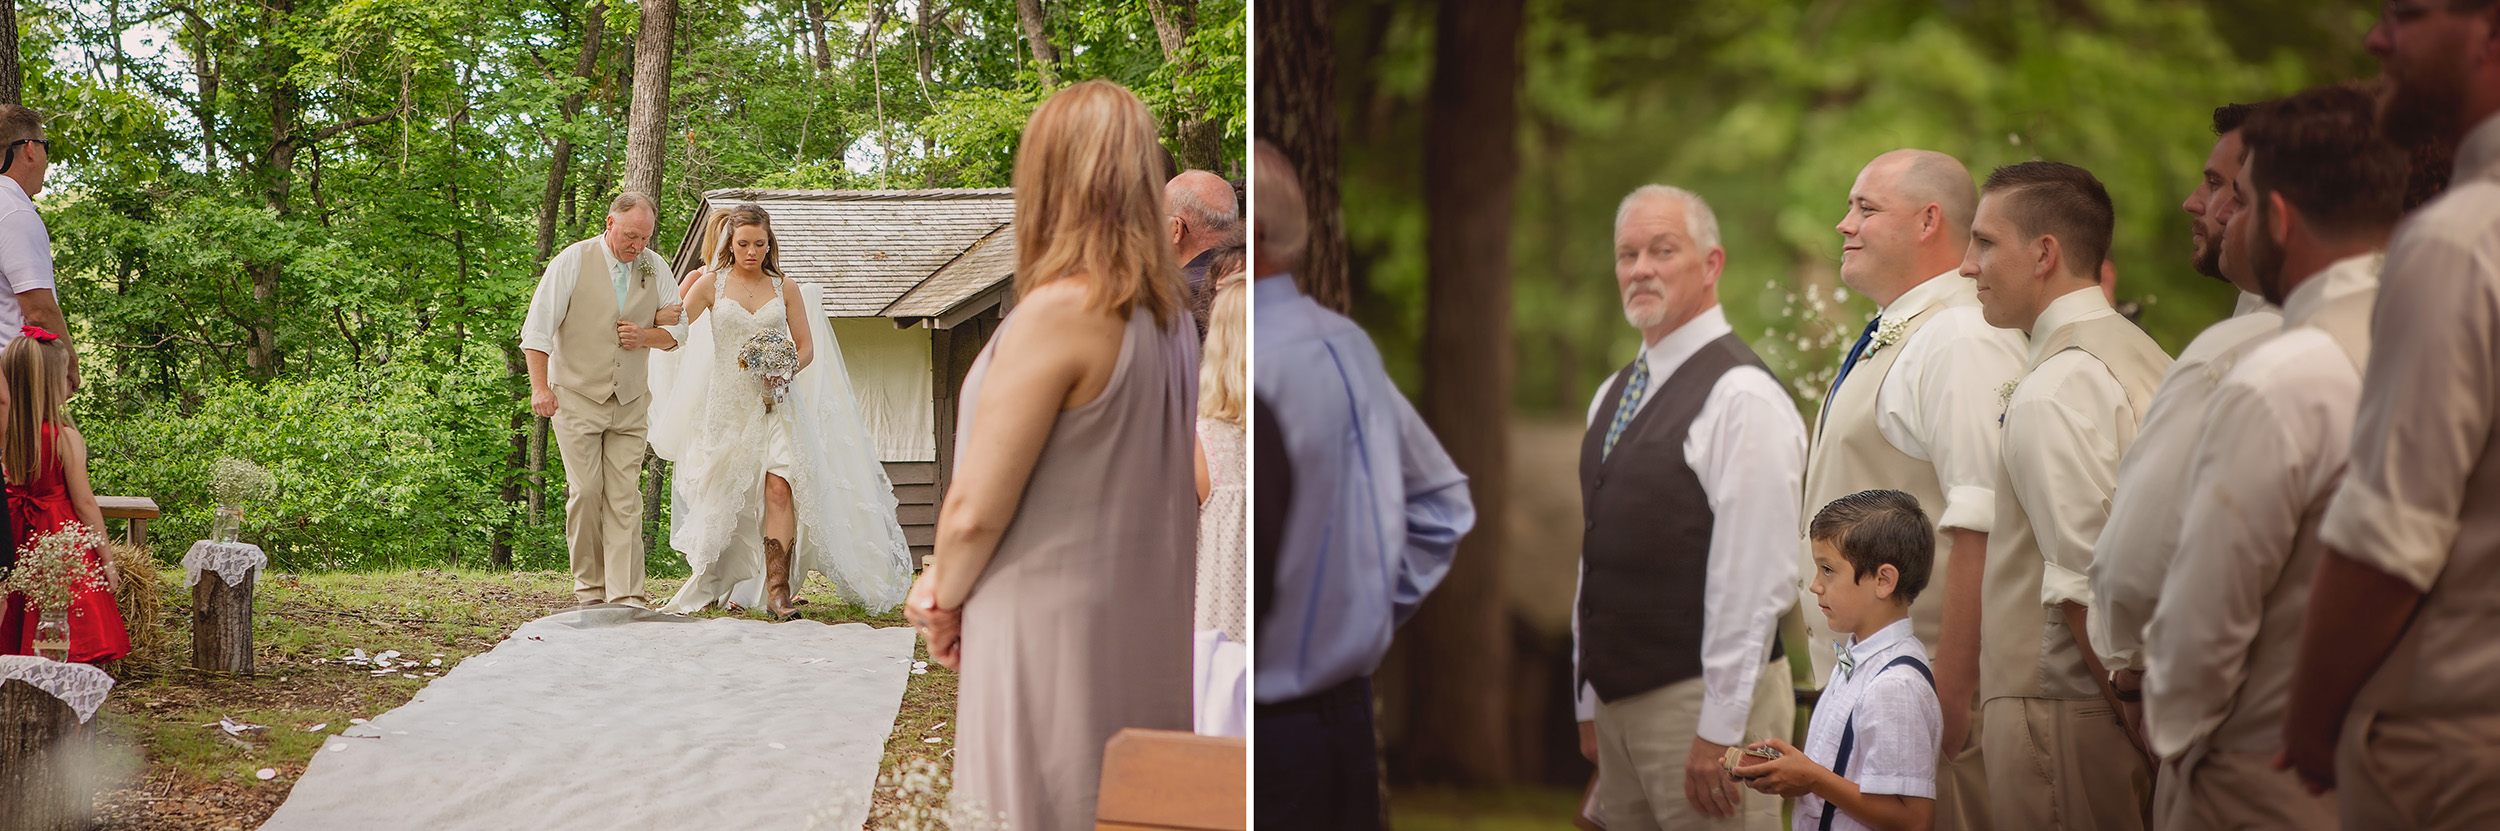 The moment Drew sees Aly for the first time on their wedding day.